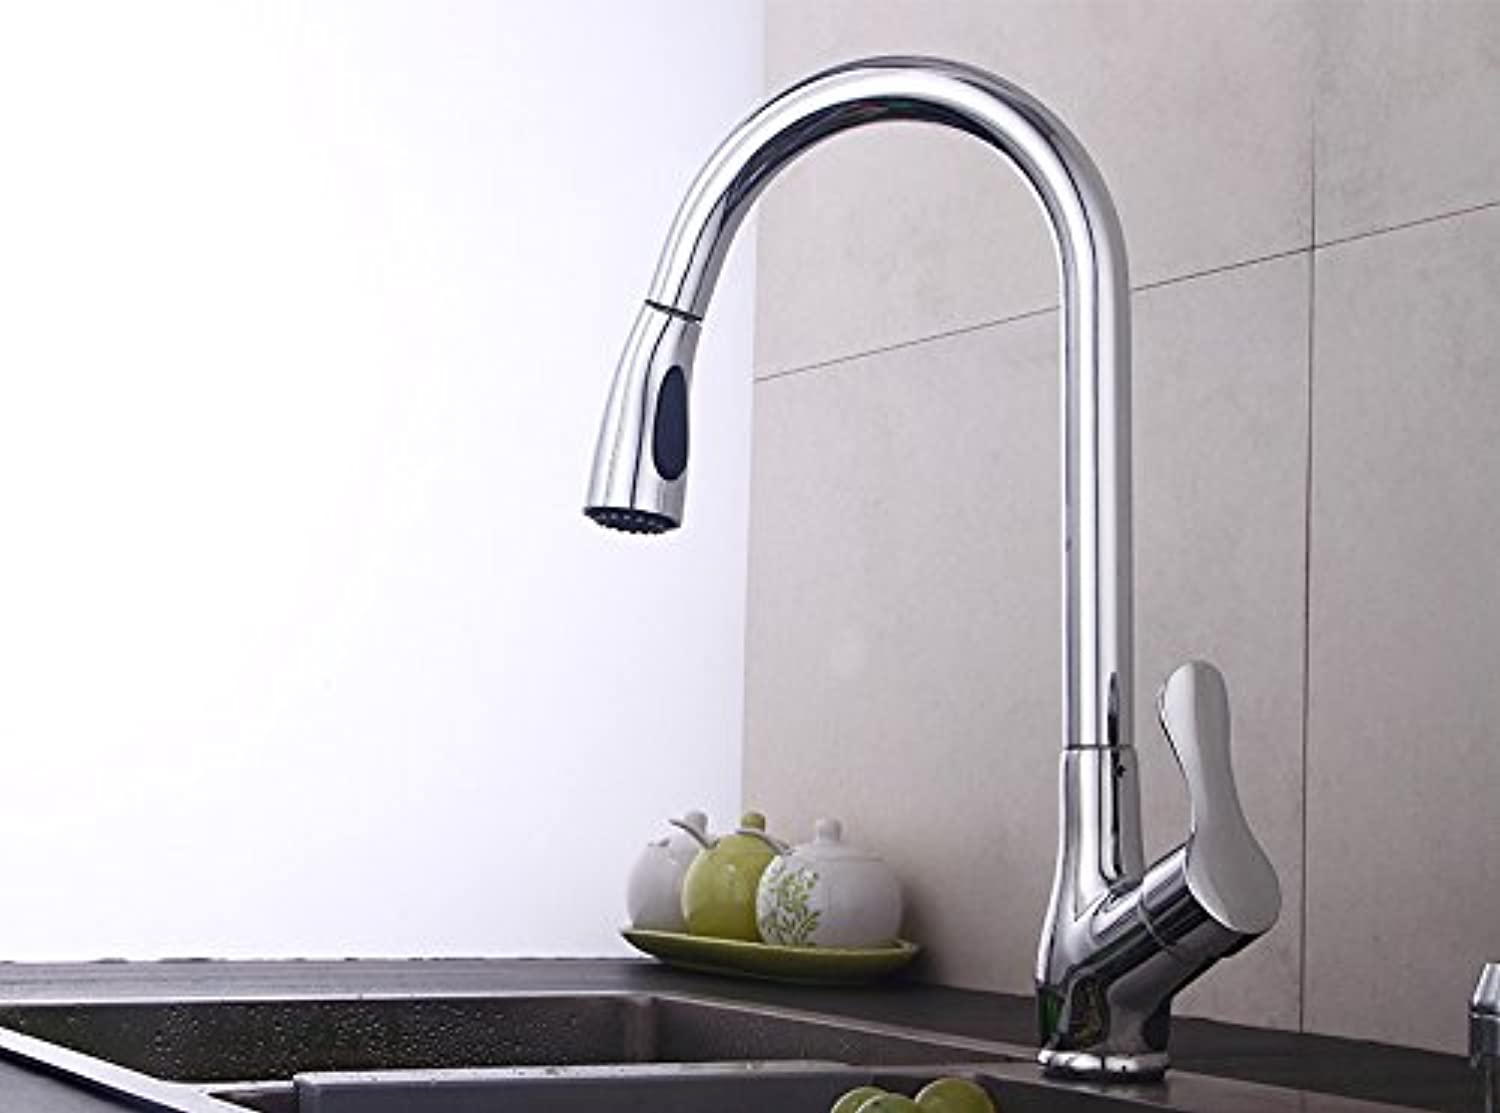 Makej Swivel Basin Faucet Brass Polished Silver Kitchen Faucet Double Control Single Handle Hole Deck Mount Mixer Water Tap